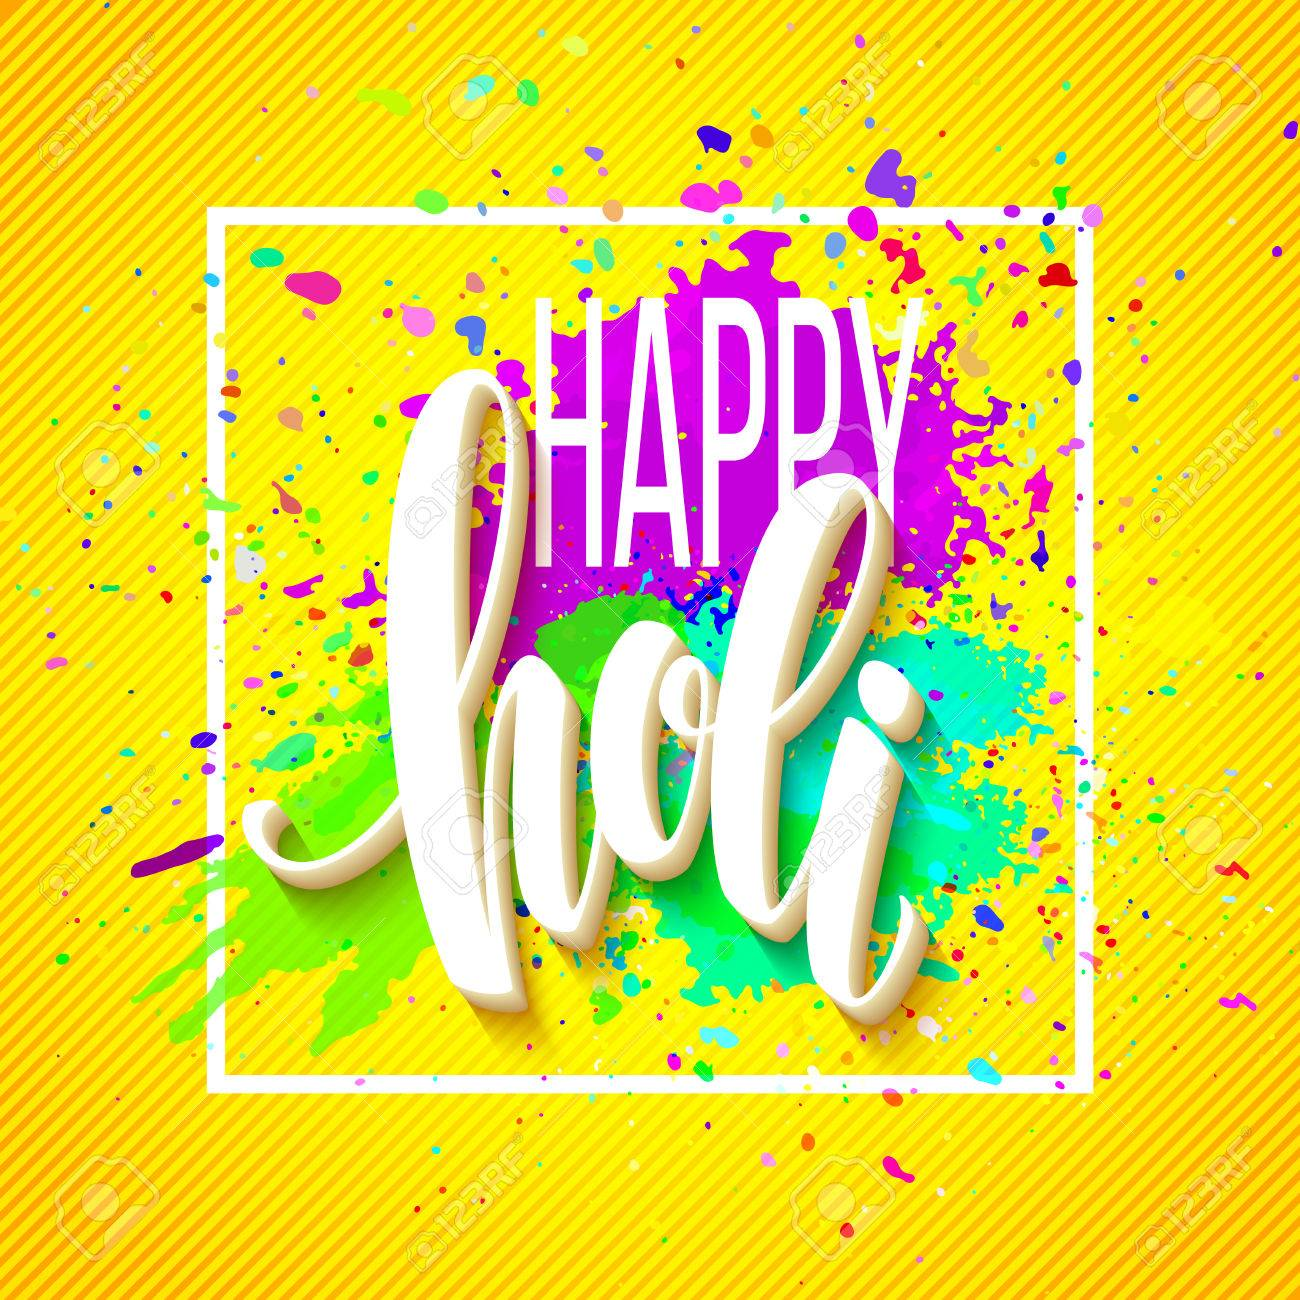 Happy holi festival of colors greeting background with colorful happy holi festival of colors greeting background with colorful holi powder paint clouds and sample text kristyandbryce Image collections